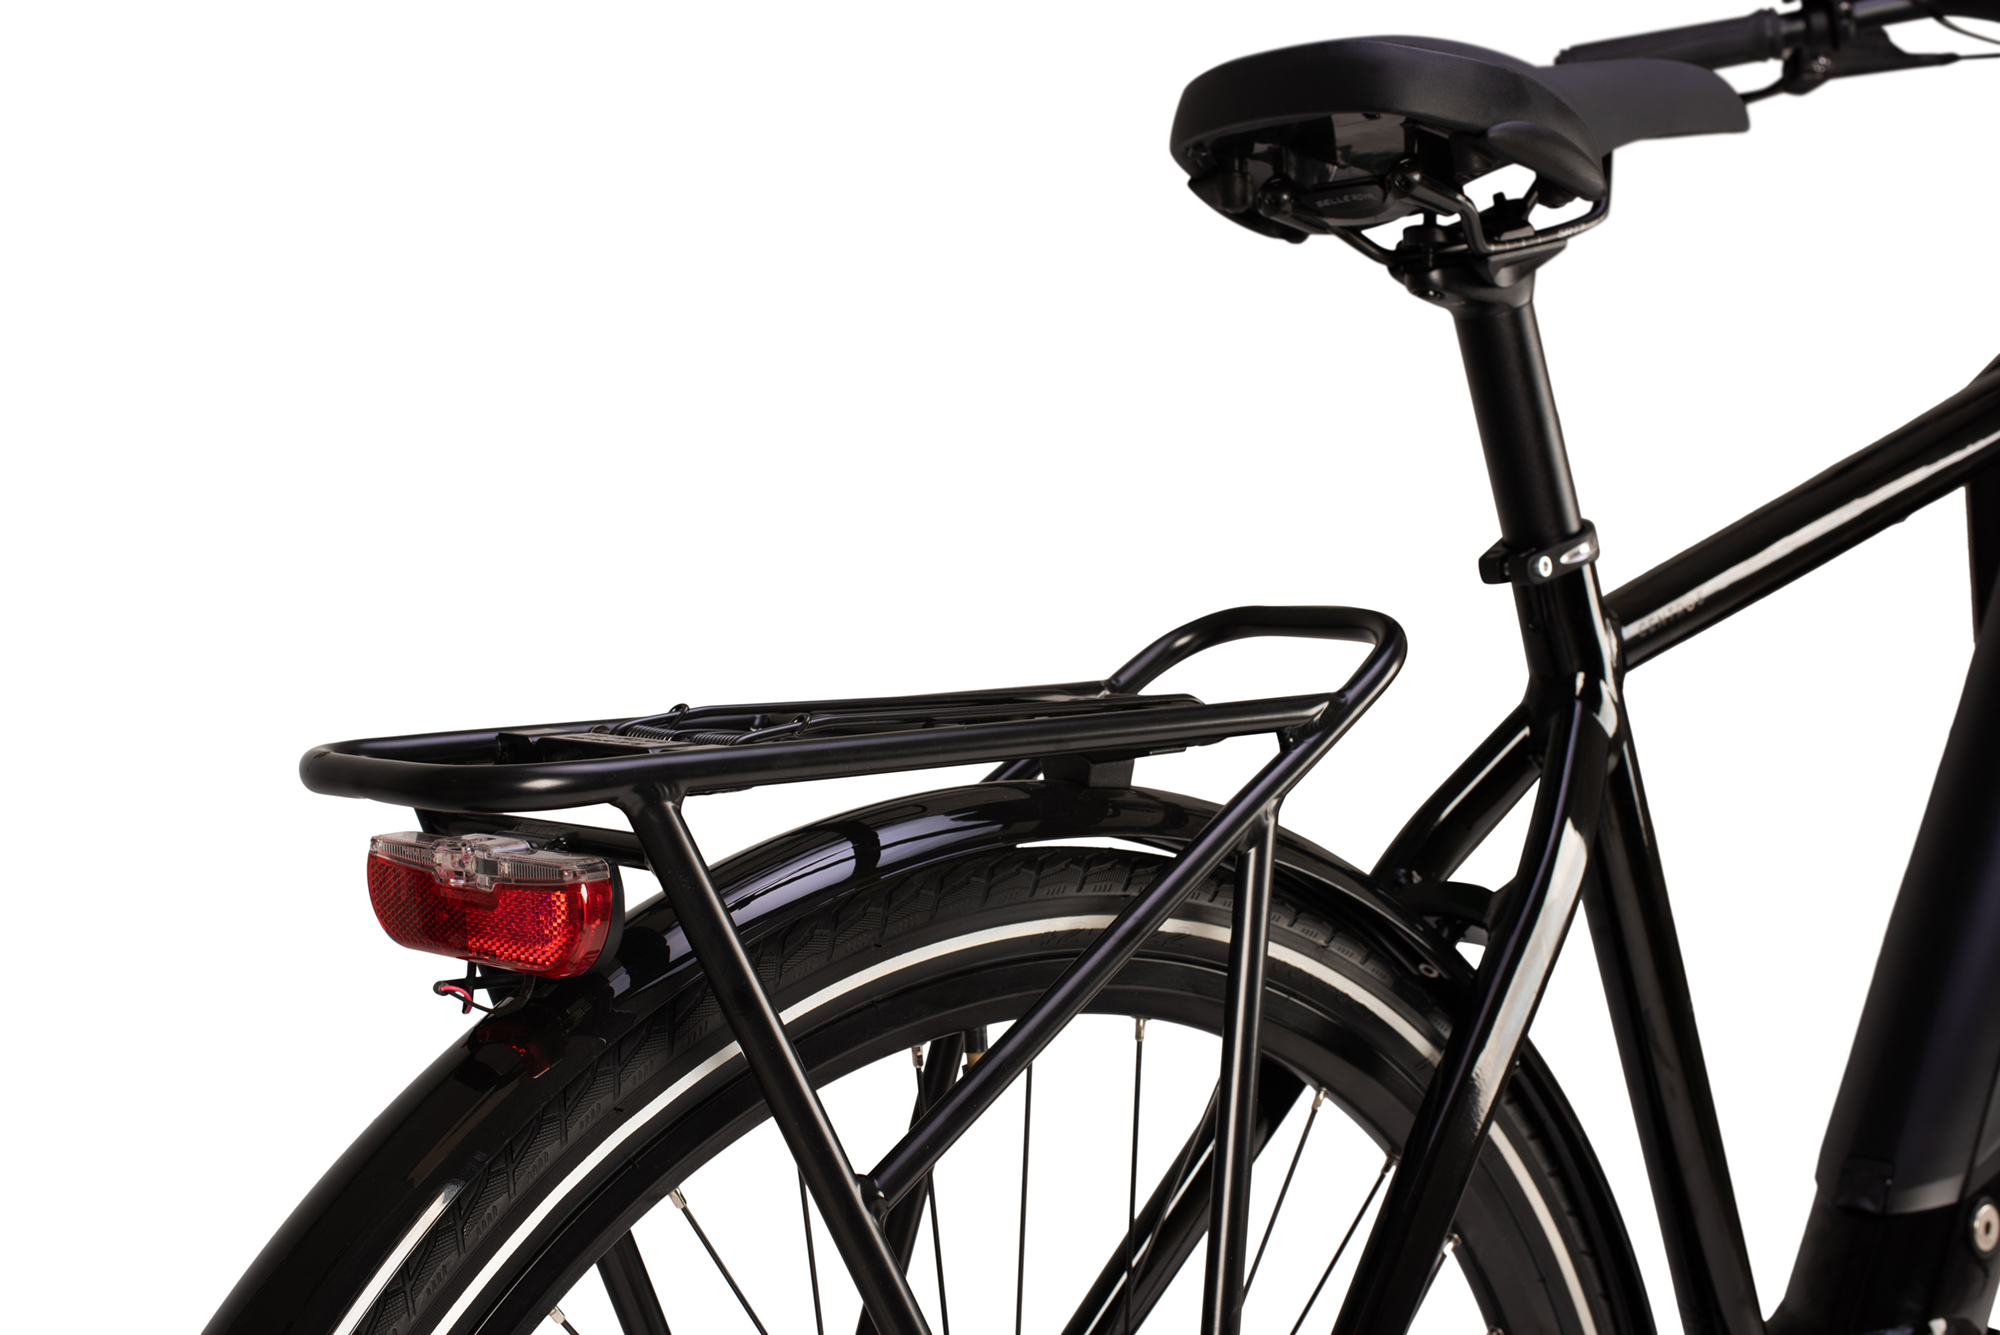 Rear luggage rack on the Raleigh Array Tour electric bike